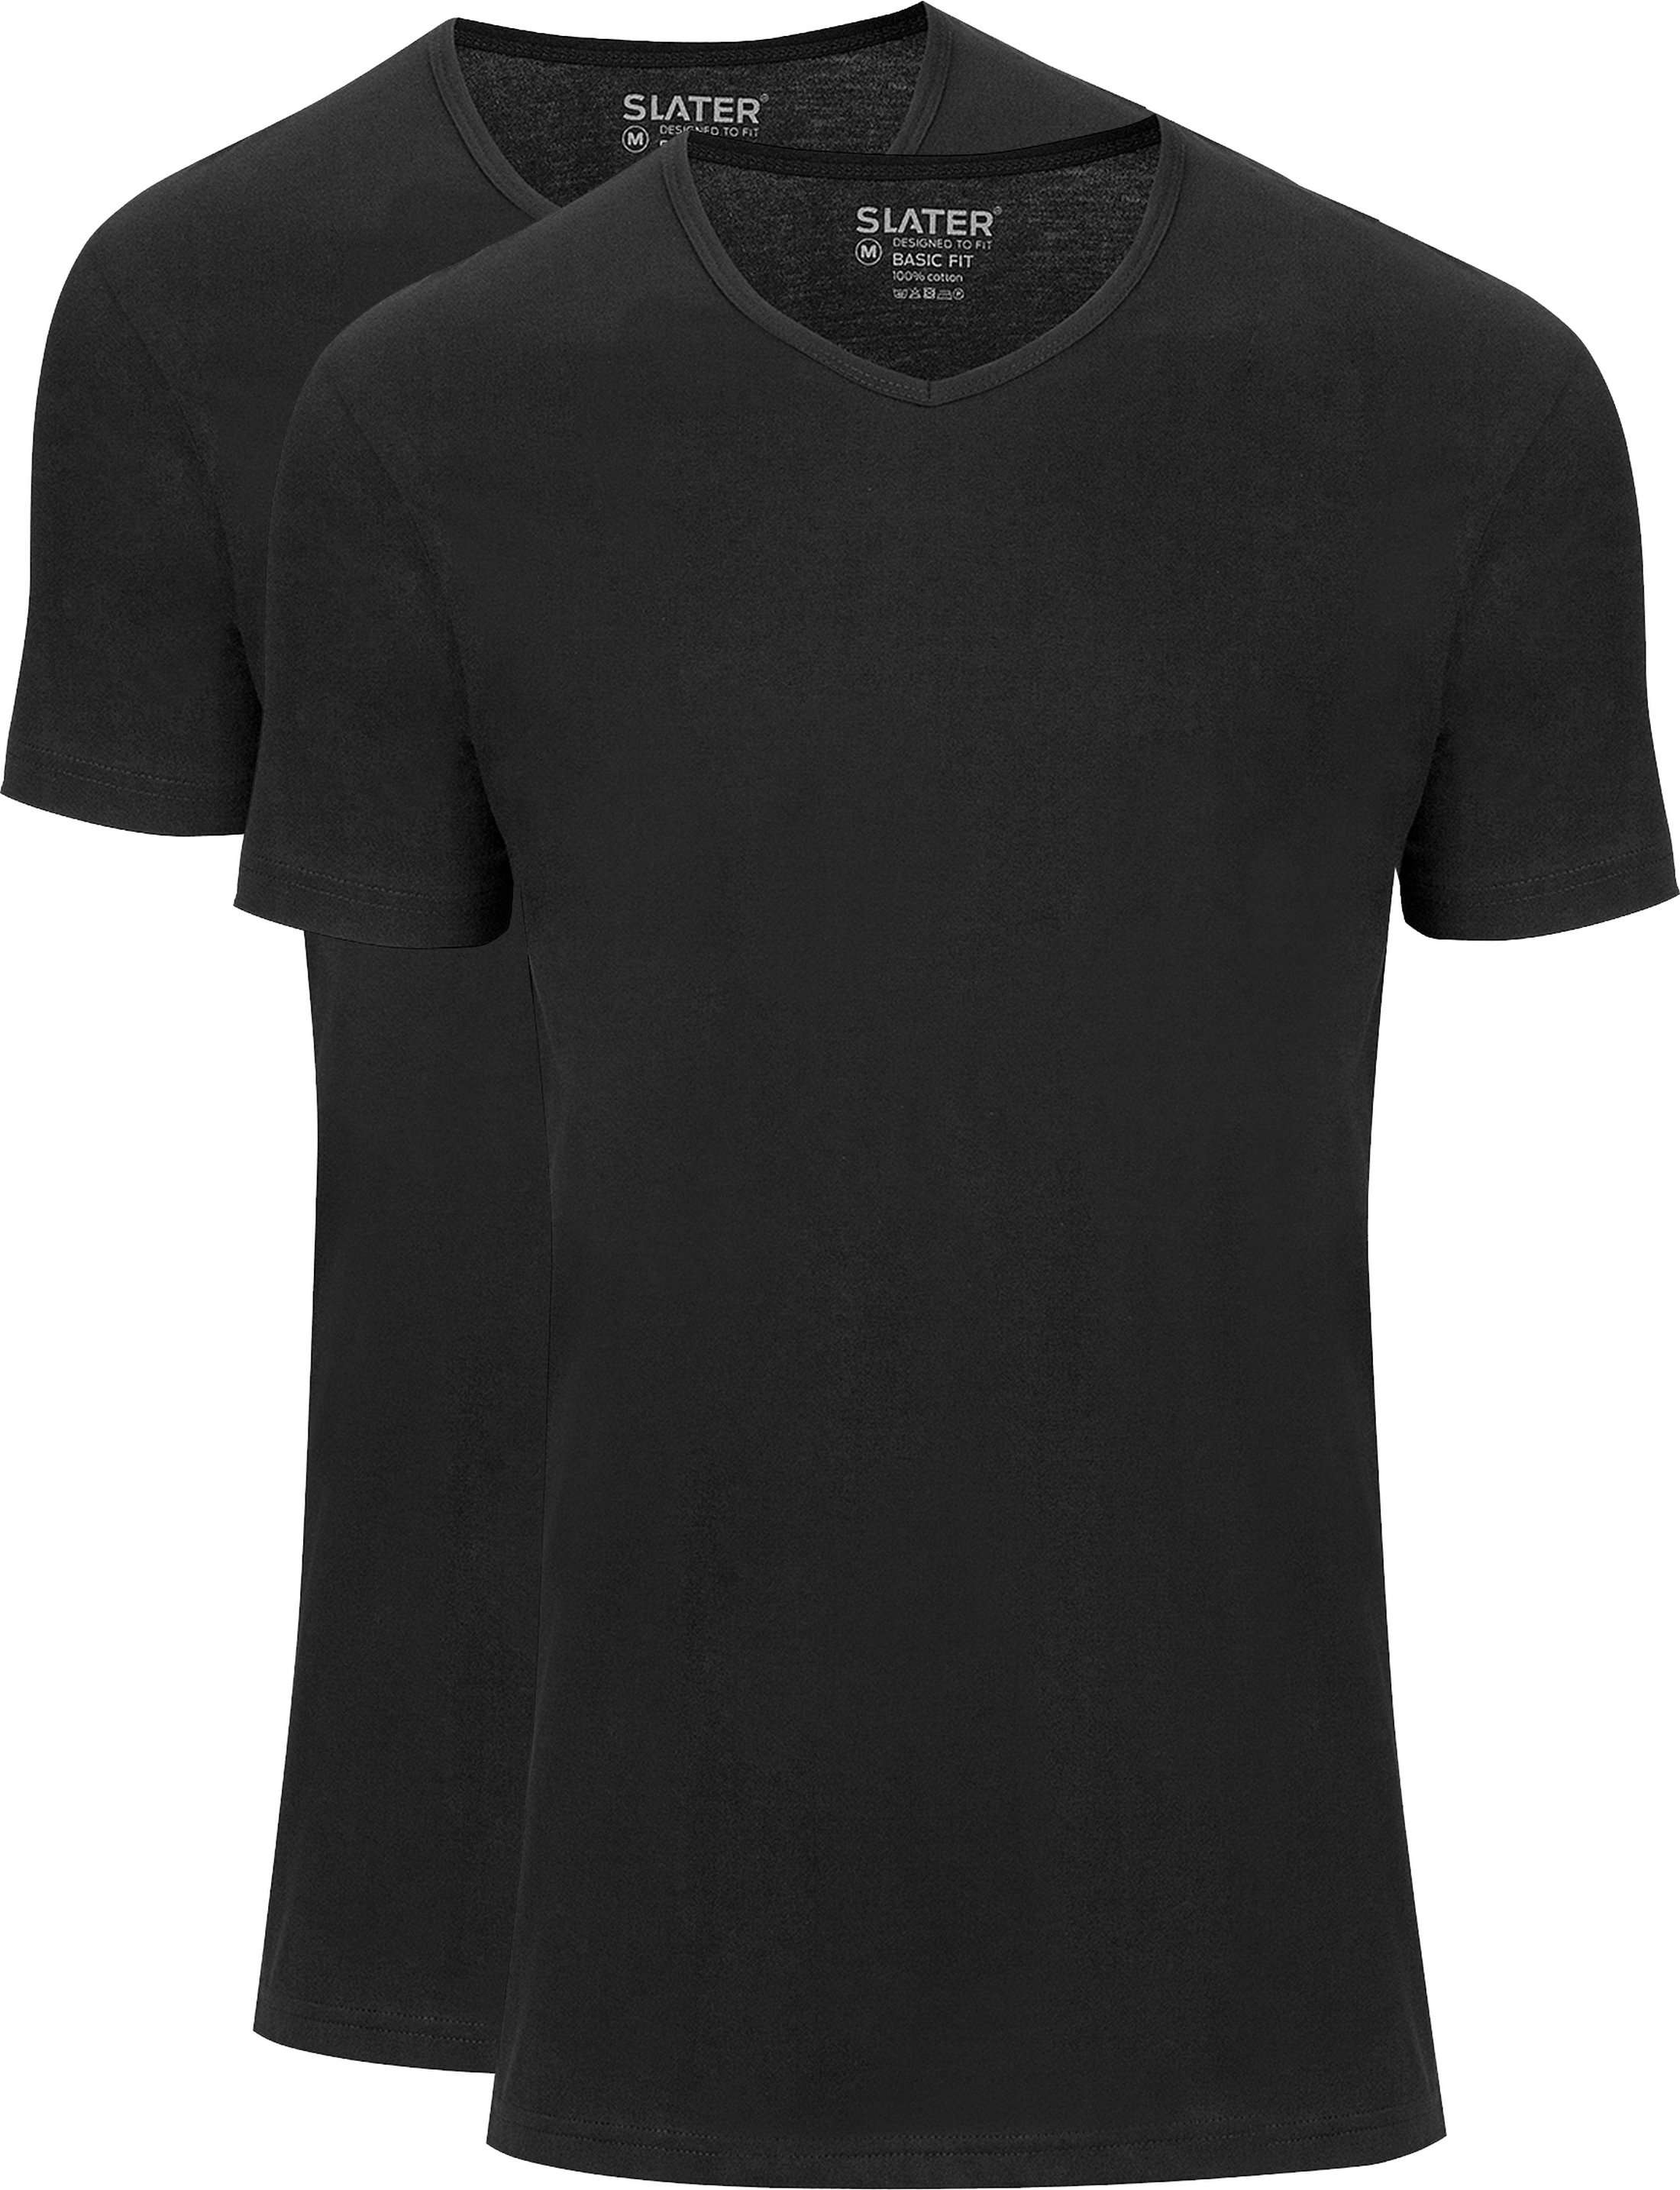 Slater 2-pack Basic Fit T-shirt V-neck Black foto 0